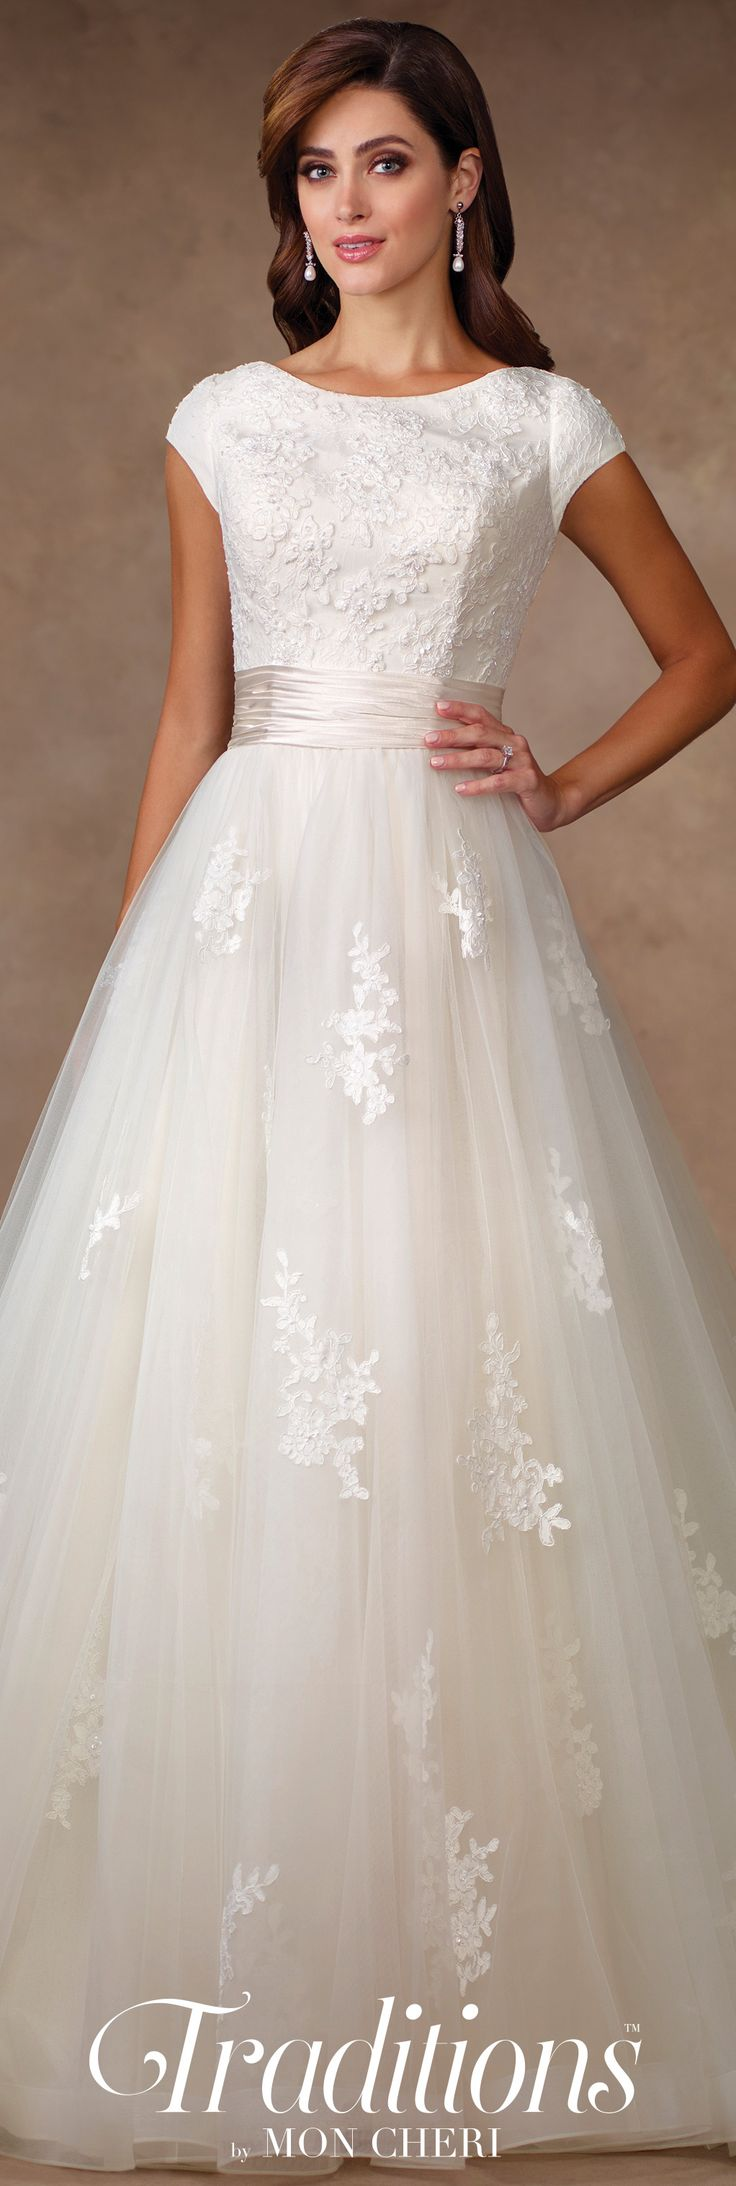 116 best mature bride wedding dresses images on pinterest for Modest dresses to wear to a wedding